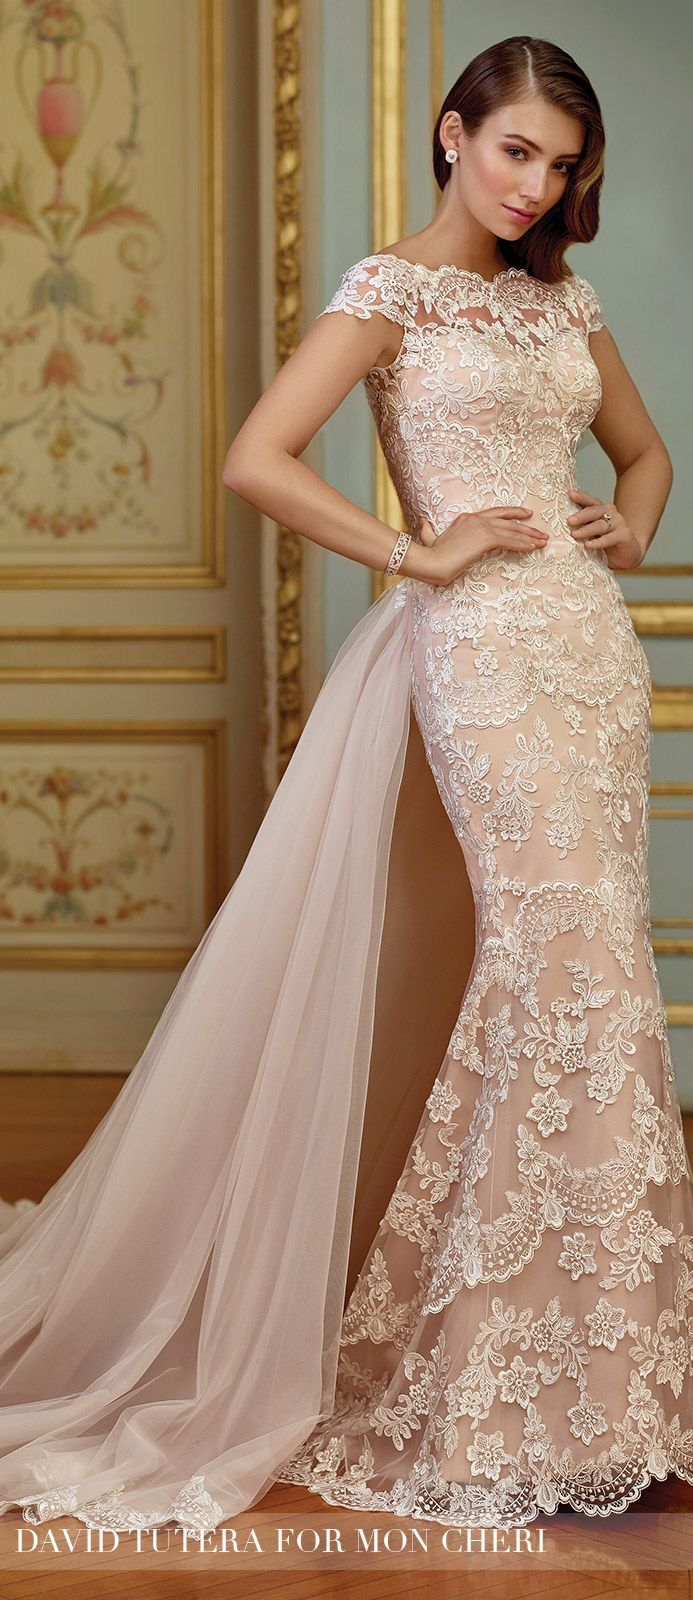 Lace wedding dress under 500 february 2019  best Haute couture for special events images on Pinterest